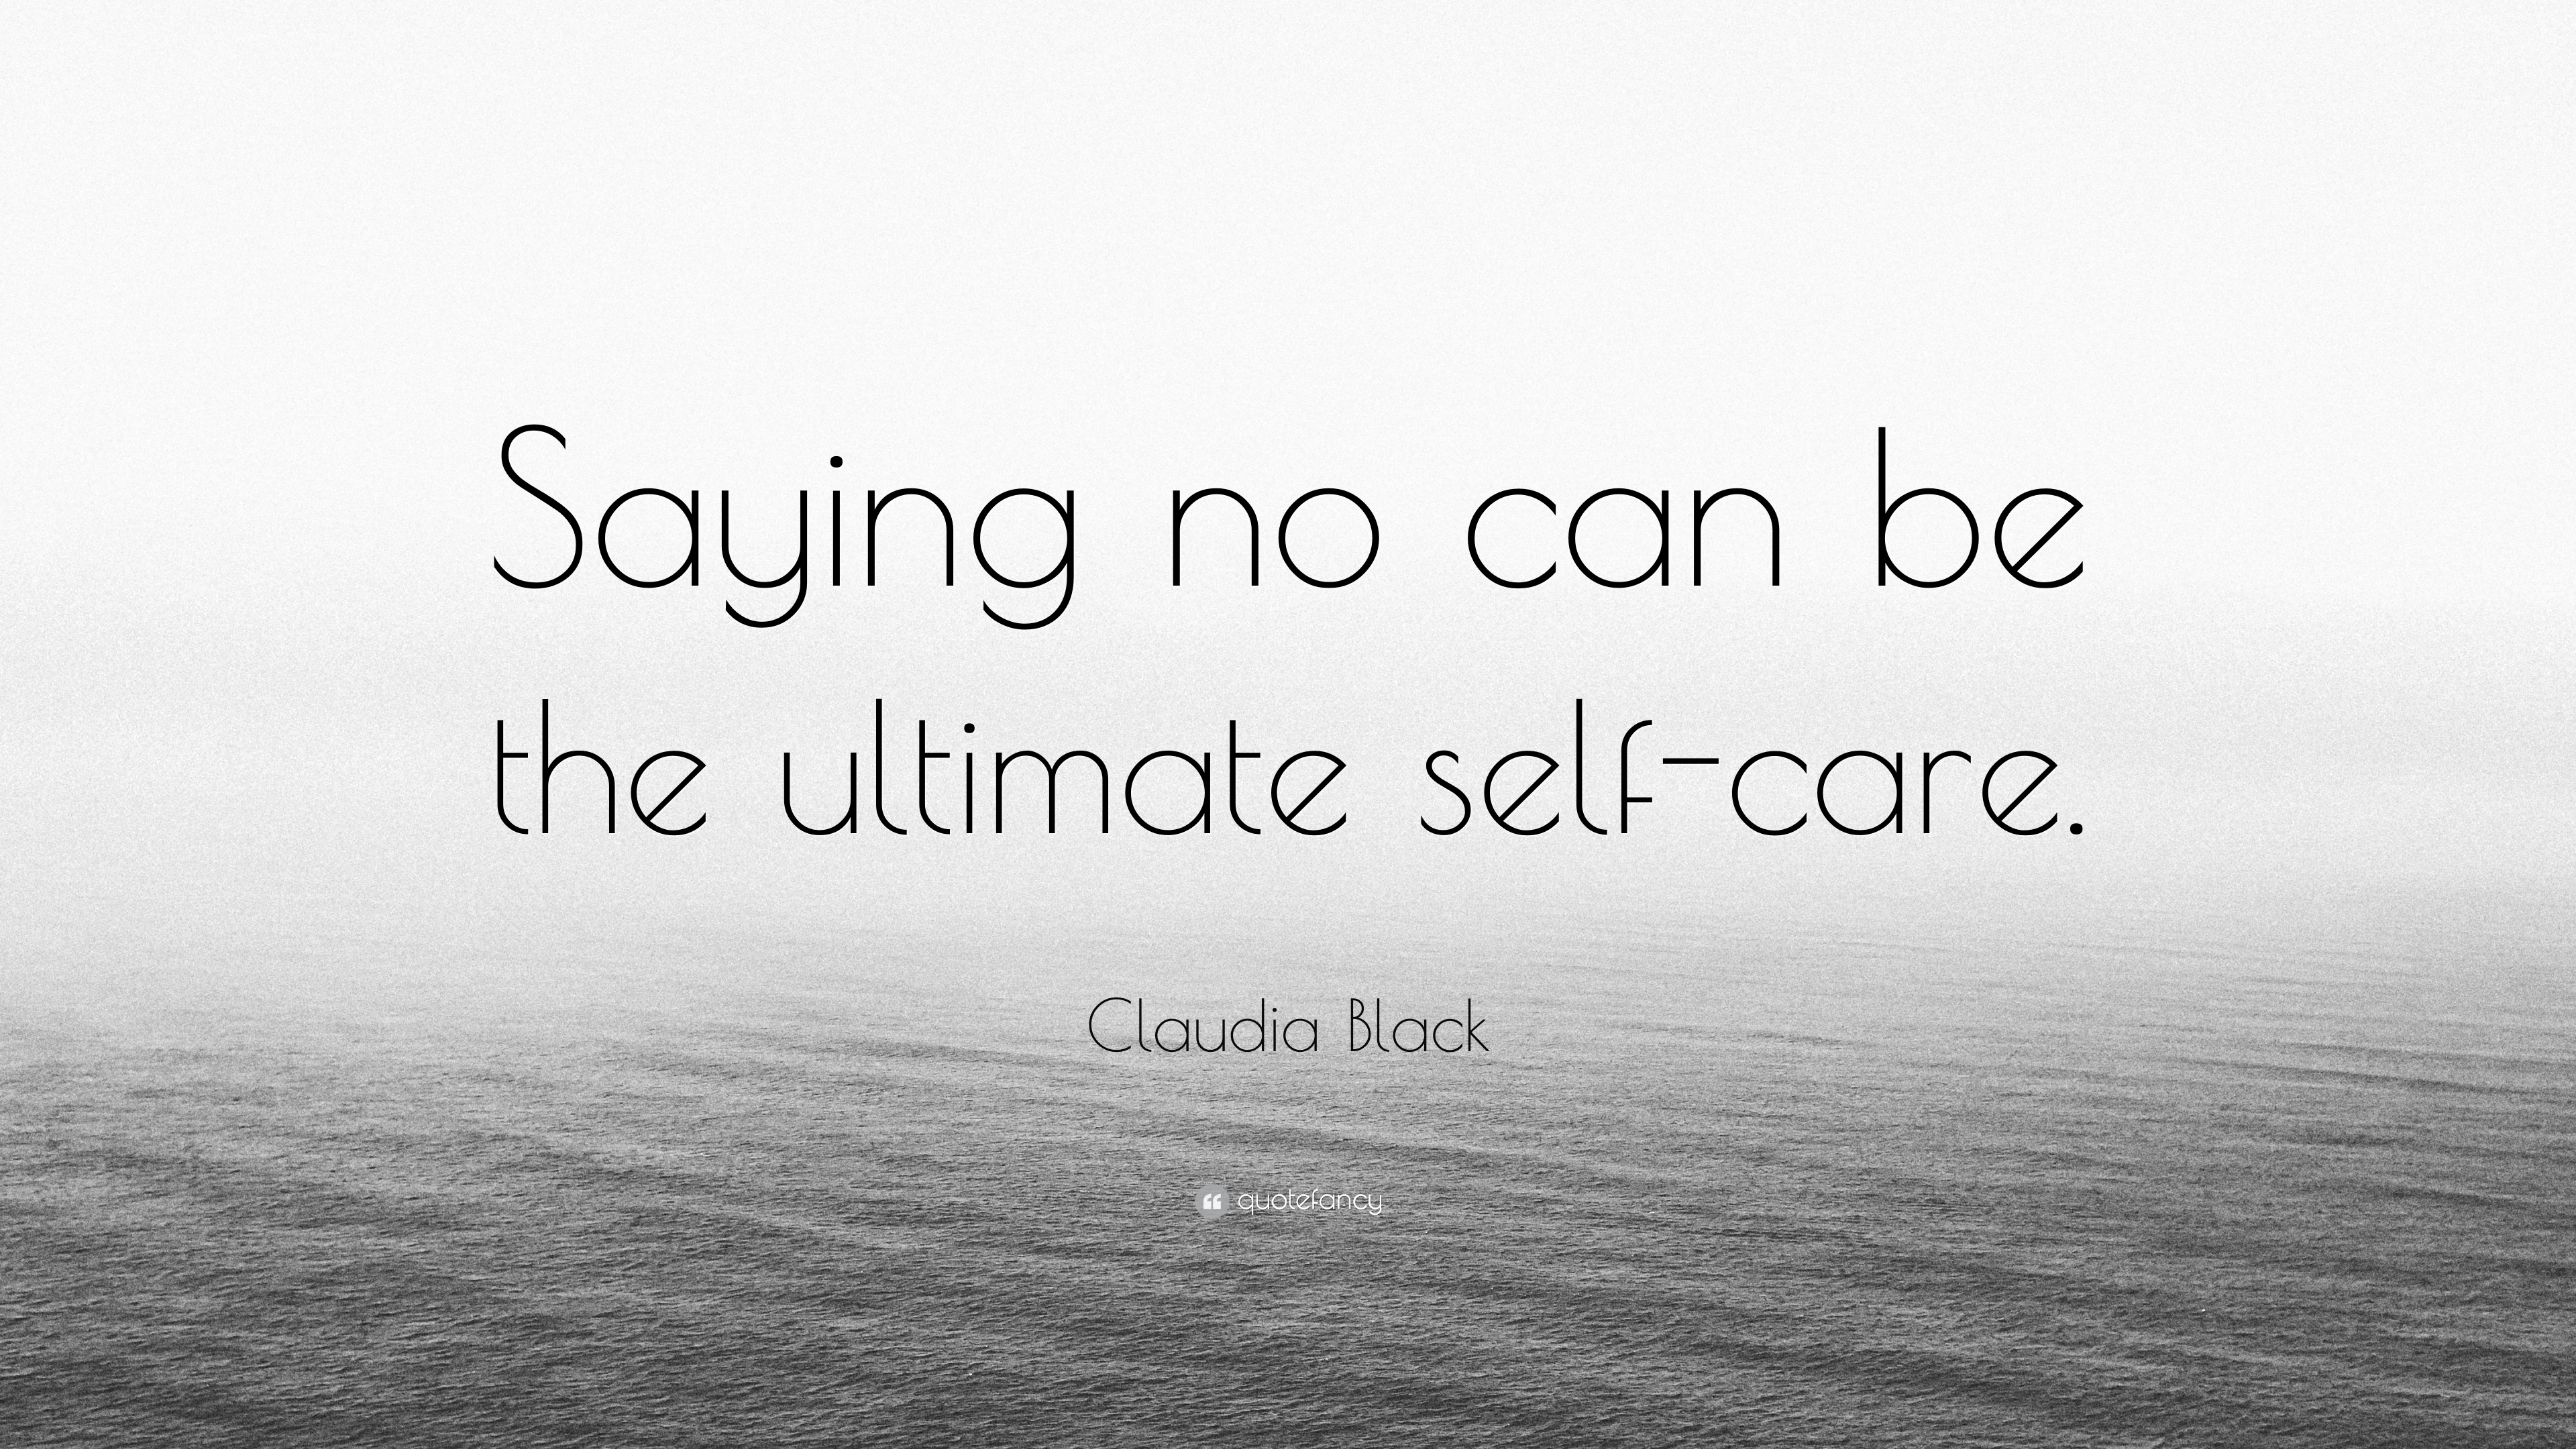 Claudia black quote saying no can be the ultimate self care